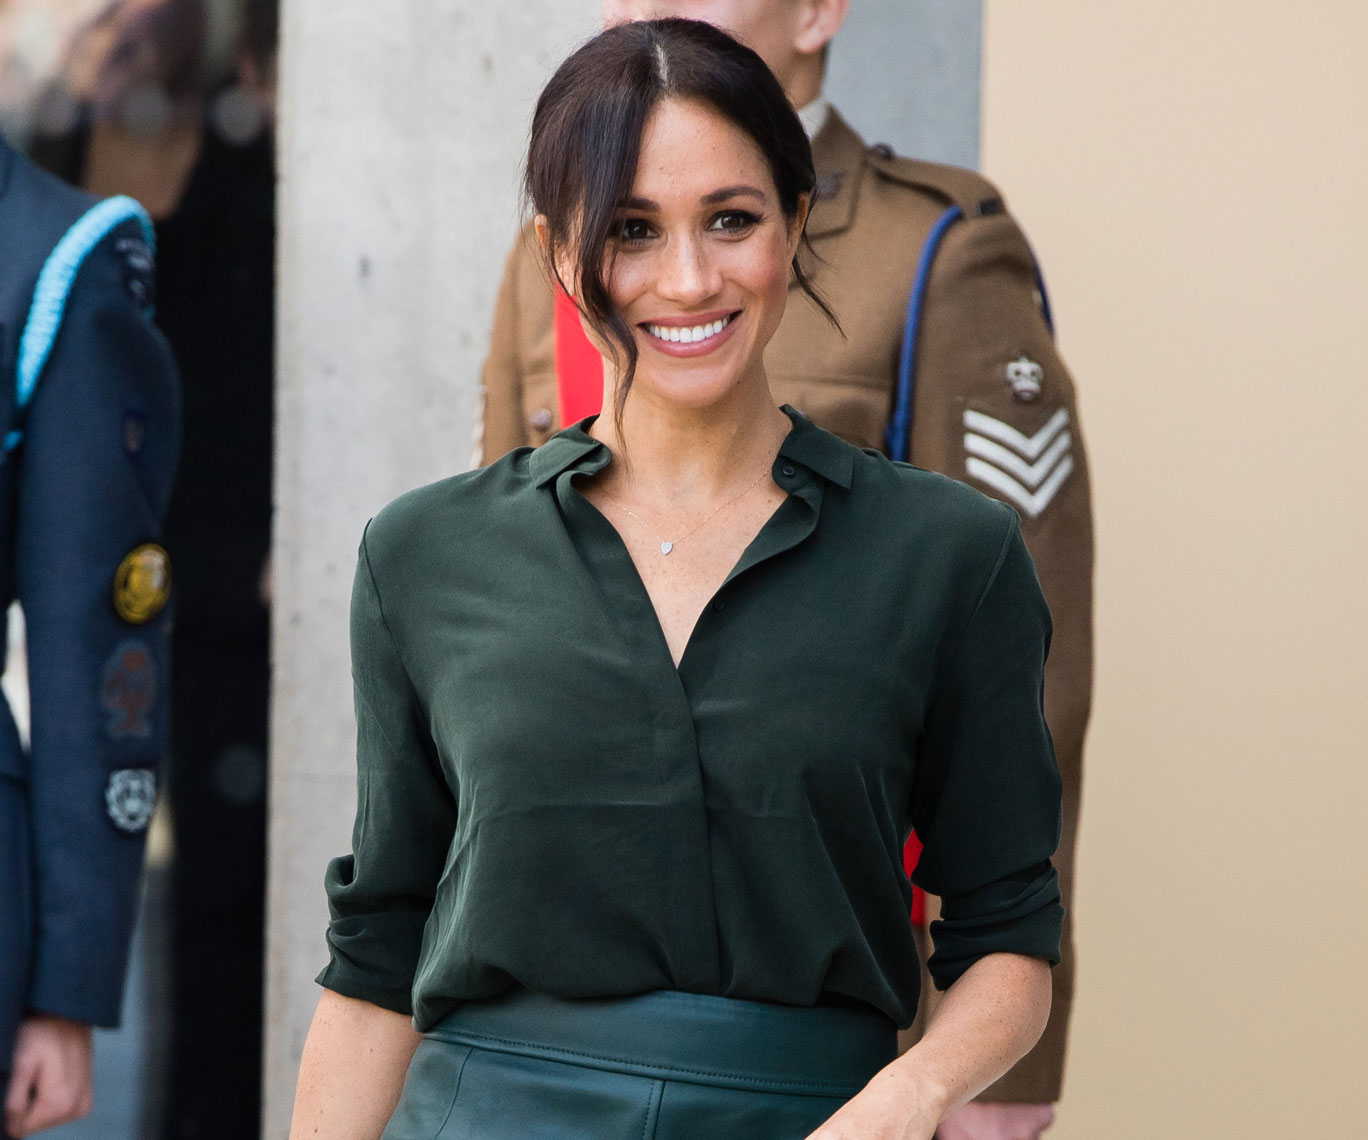 Duke and Duchess of Sussex visit county that inspired their royal titles